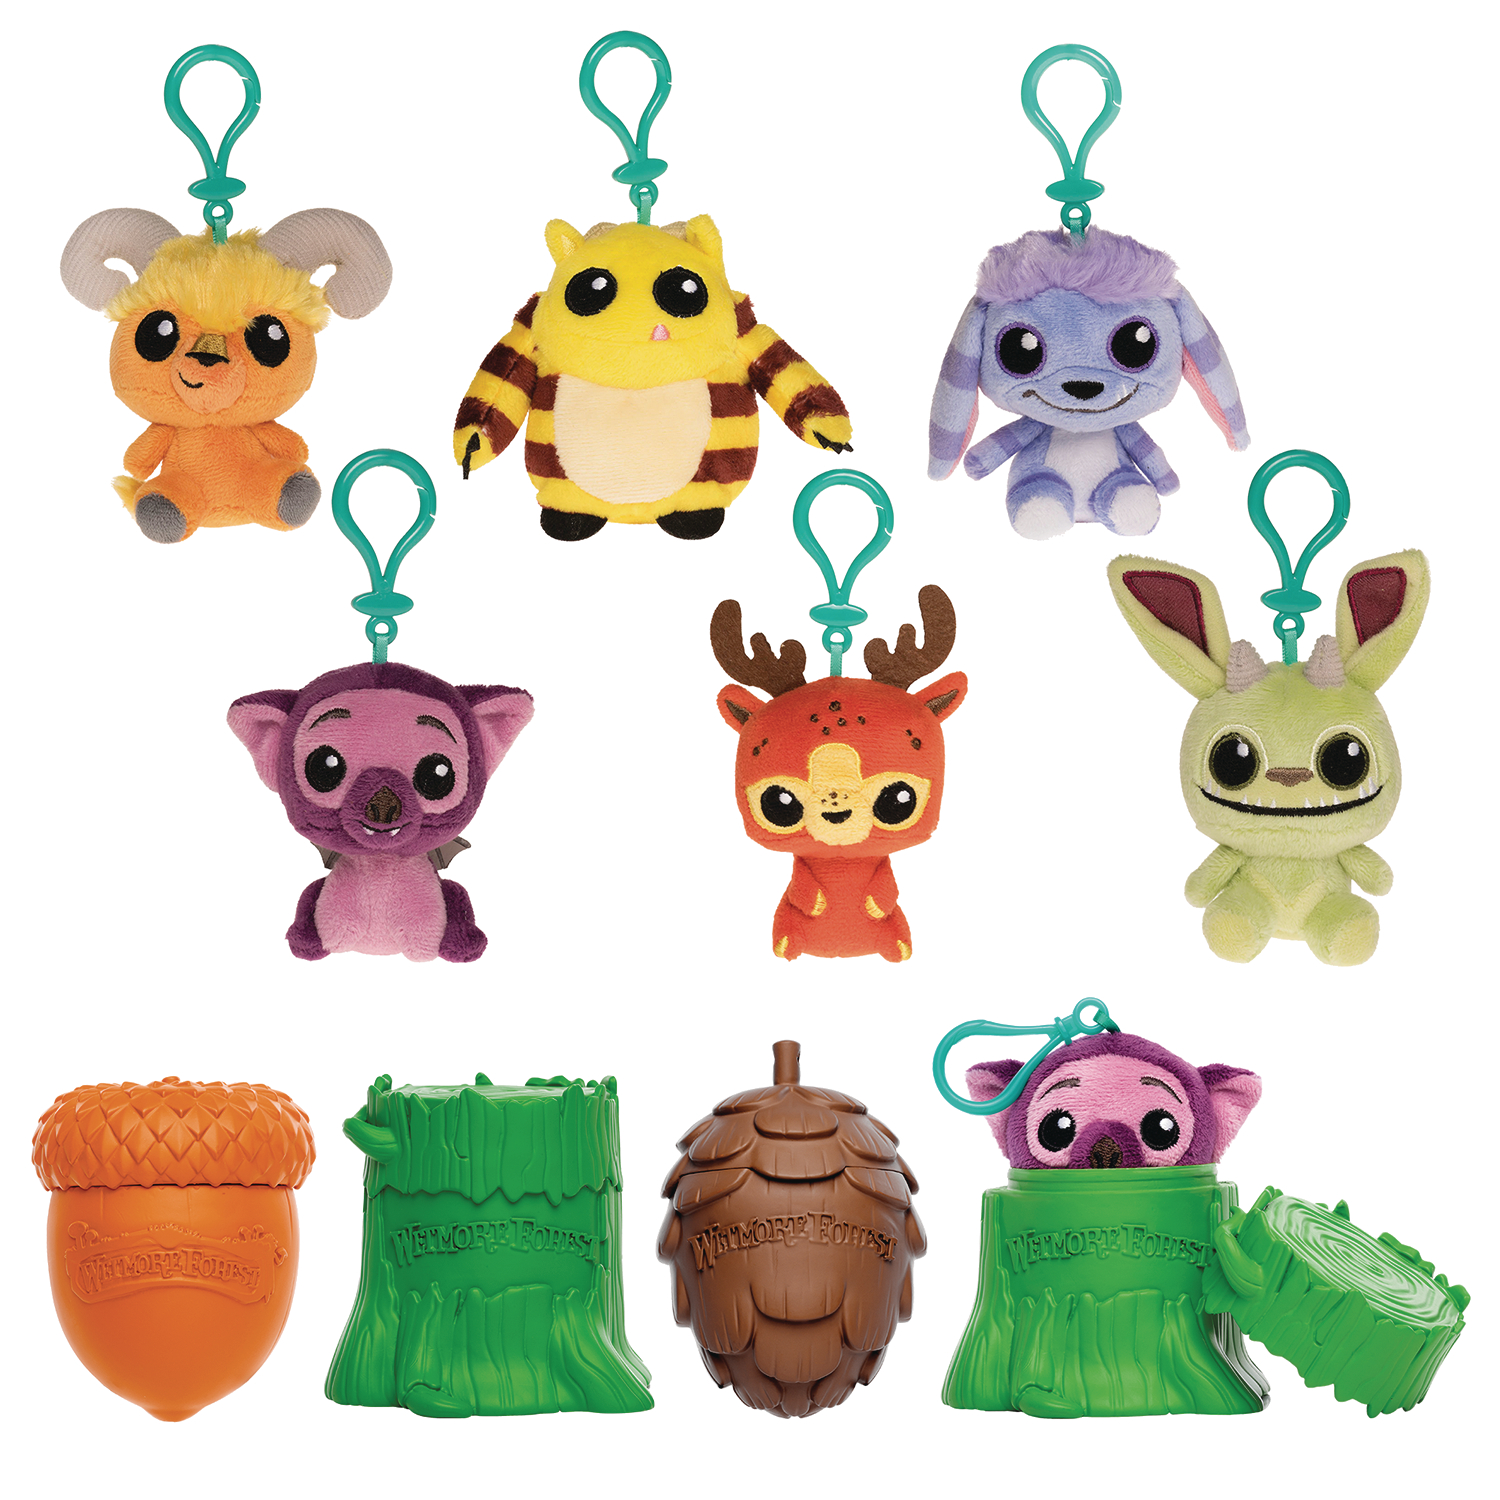 FUNKO MONSTERS 9PC PLUSH KEYCHAIN BMB DISP (Net)